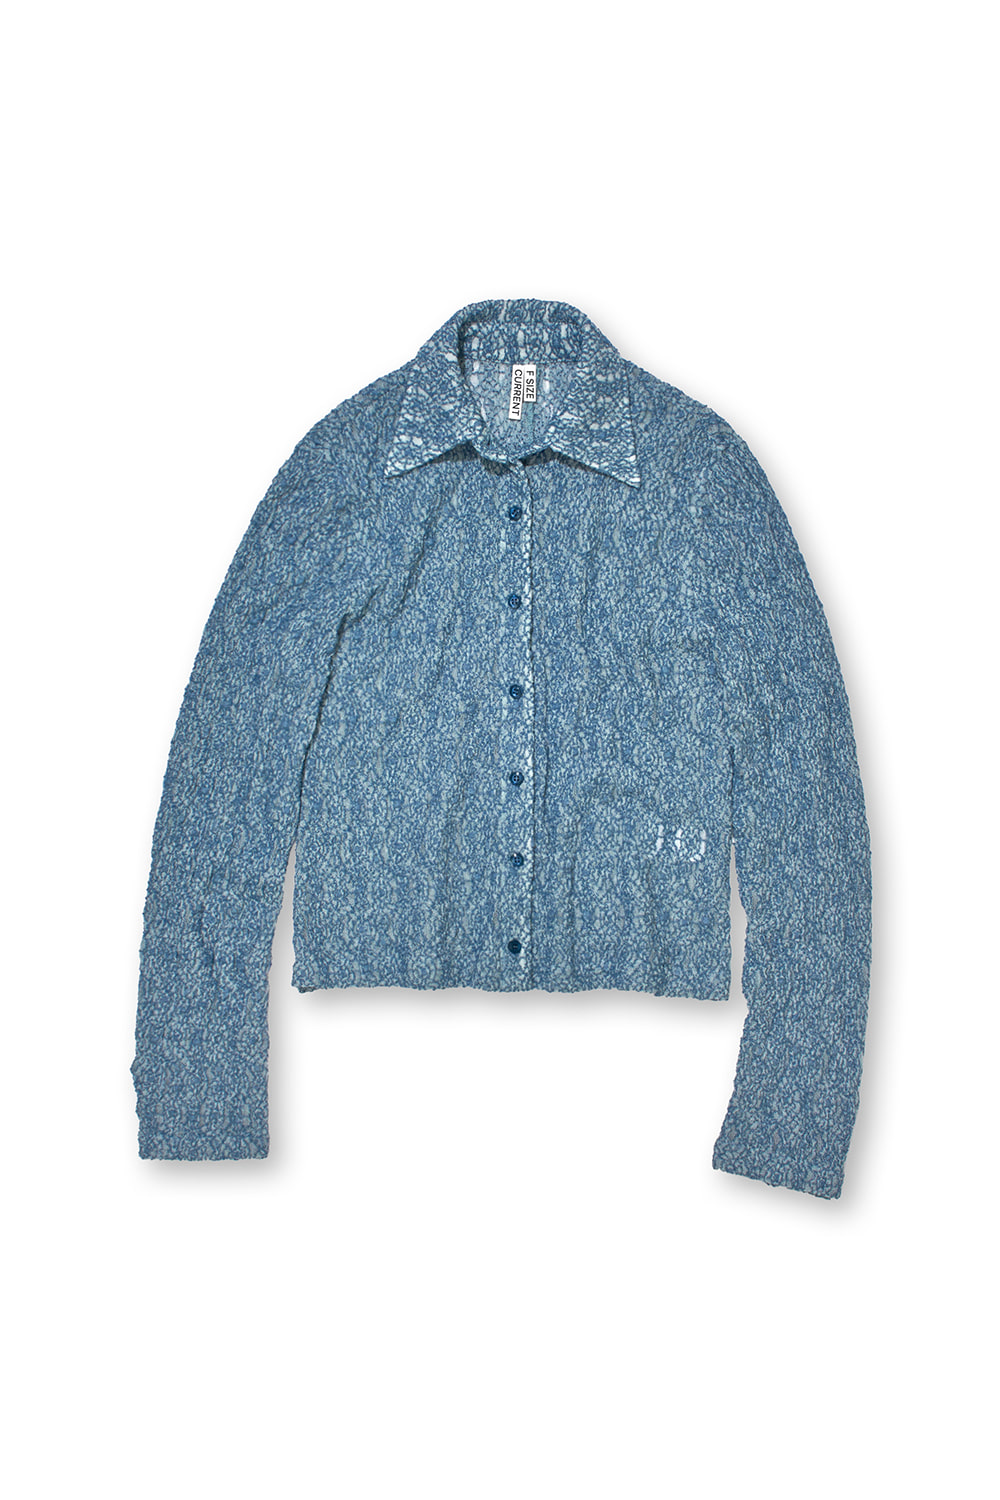 LACE SLIM SHIRT KS [FRENCH BLUE]